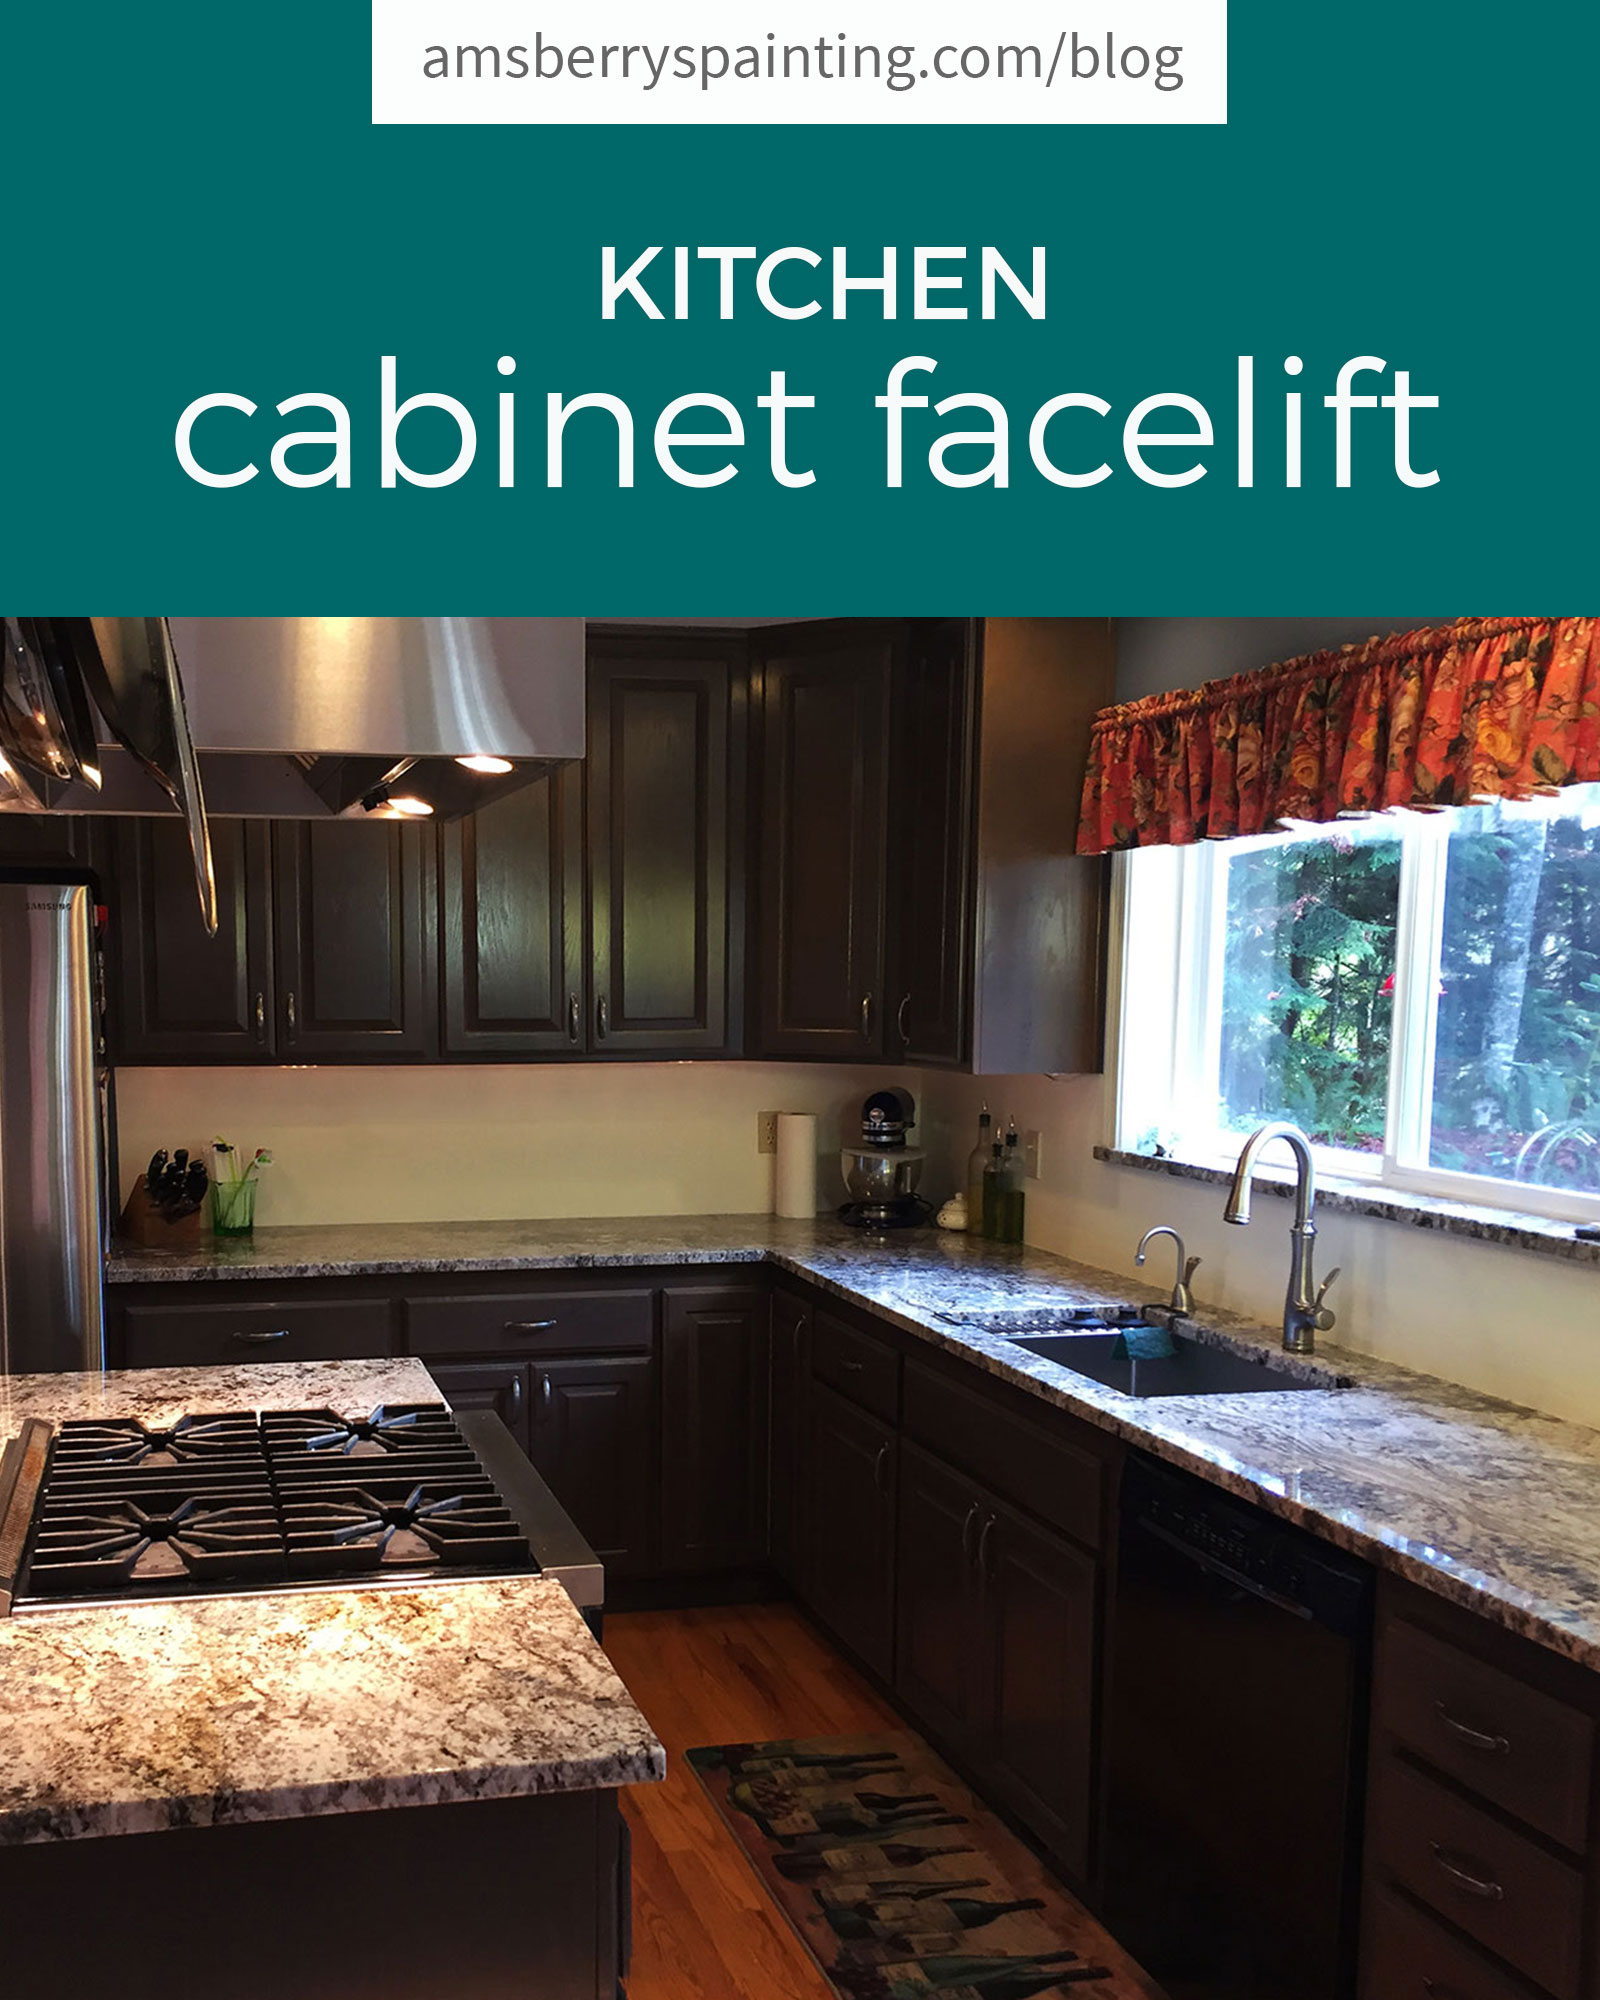 kitchen cabinet facelift - amsberry's painting